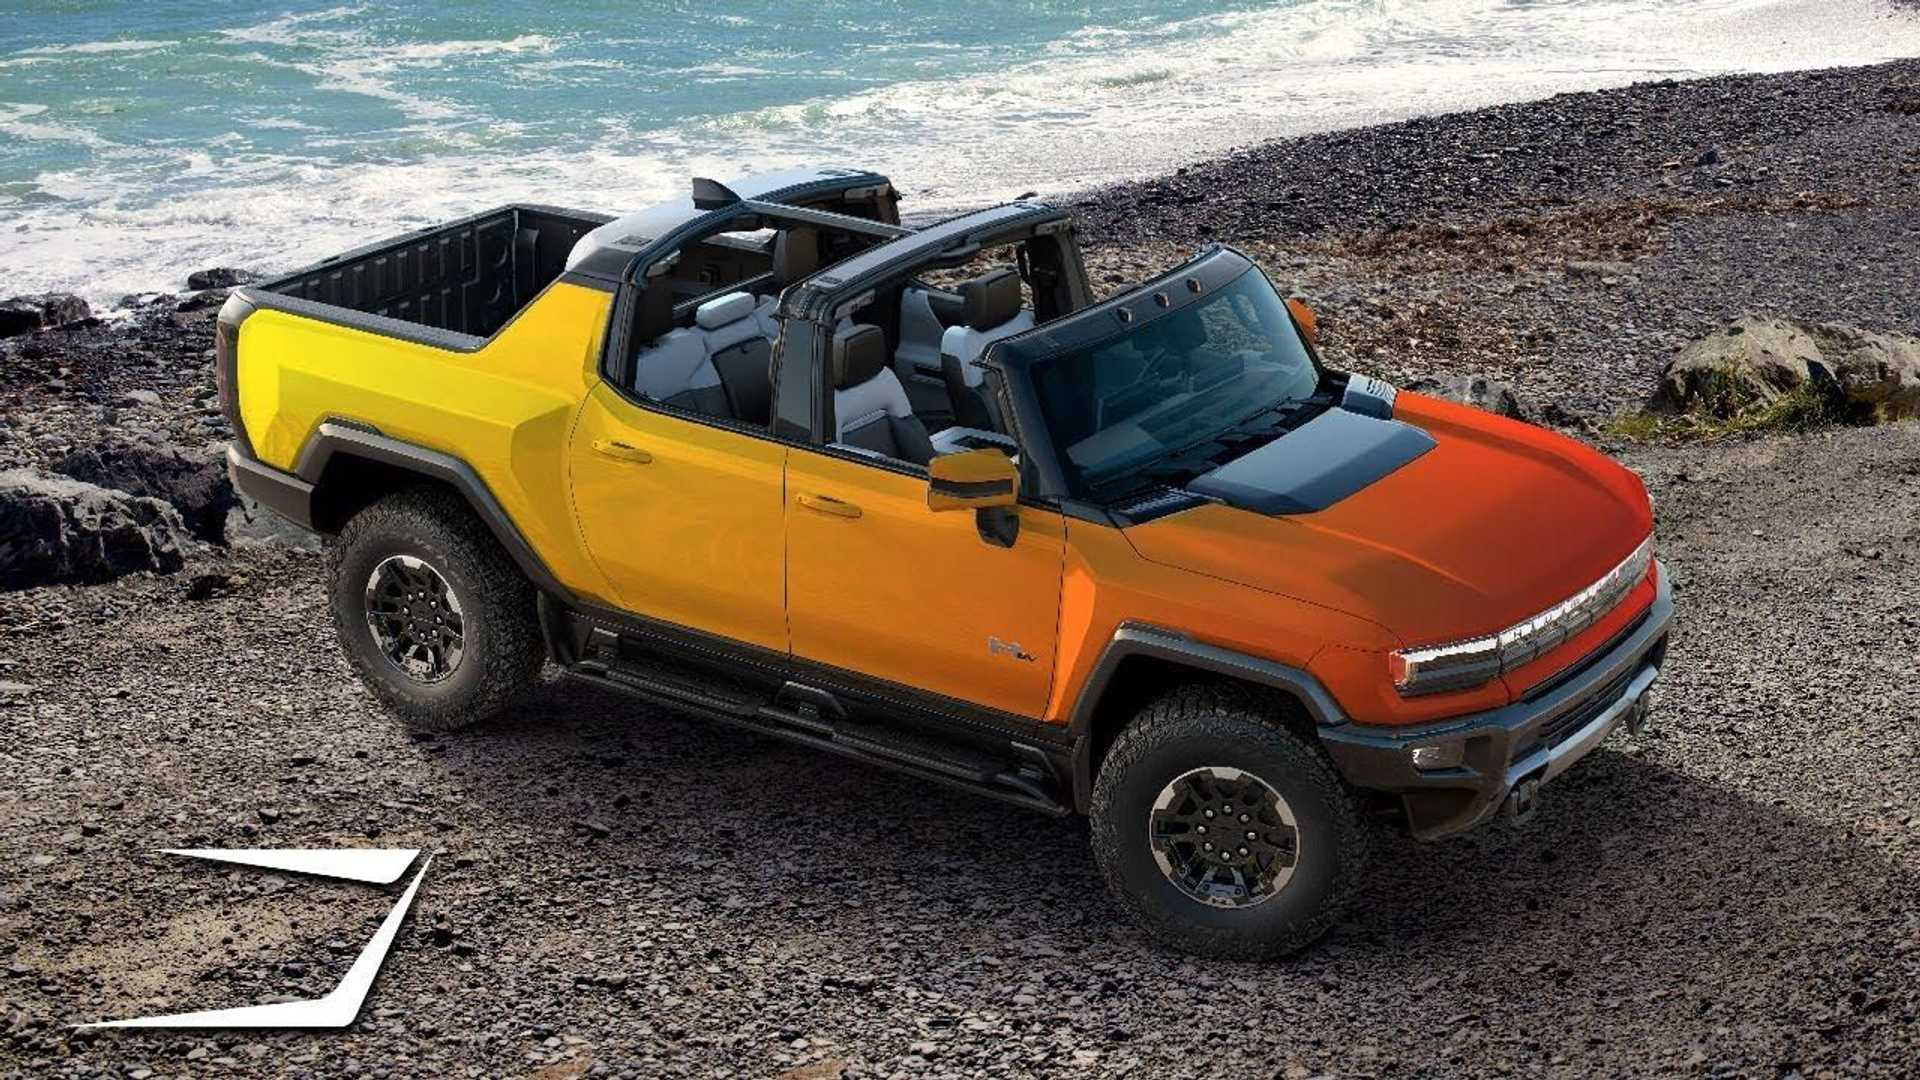 GMC Hummer Electric Pickup Truck Rendered In New Colors